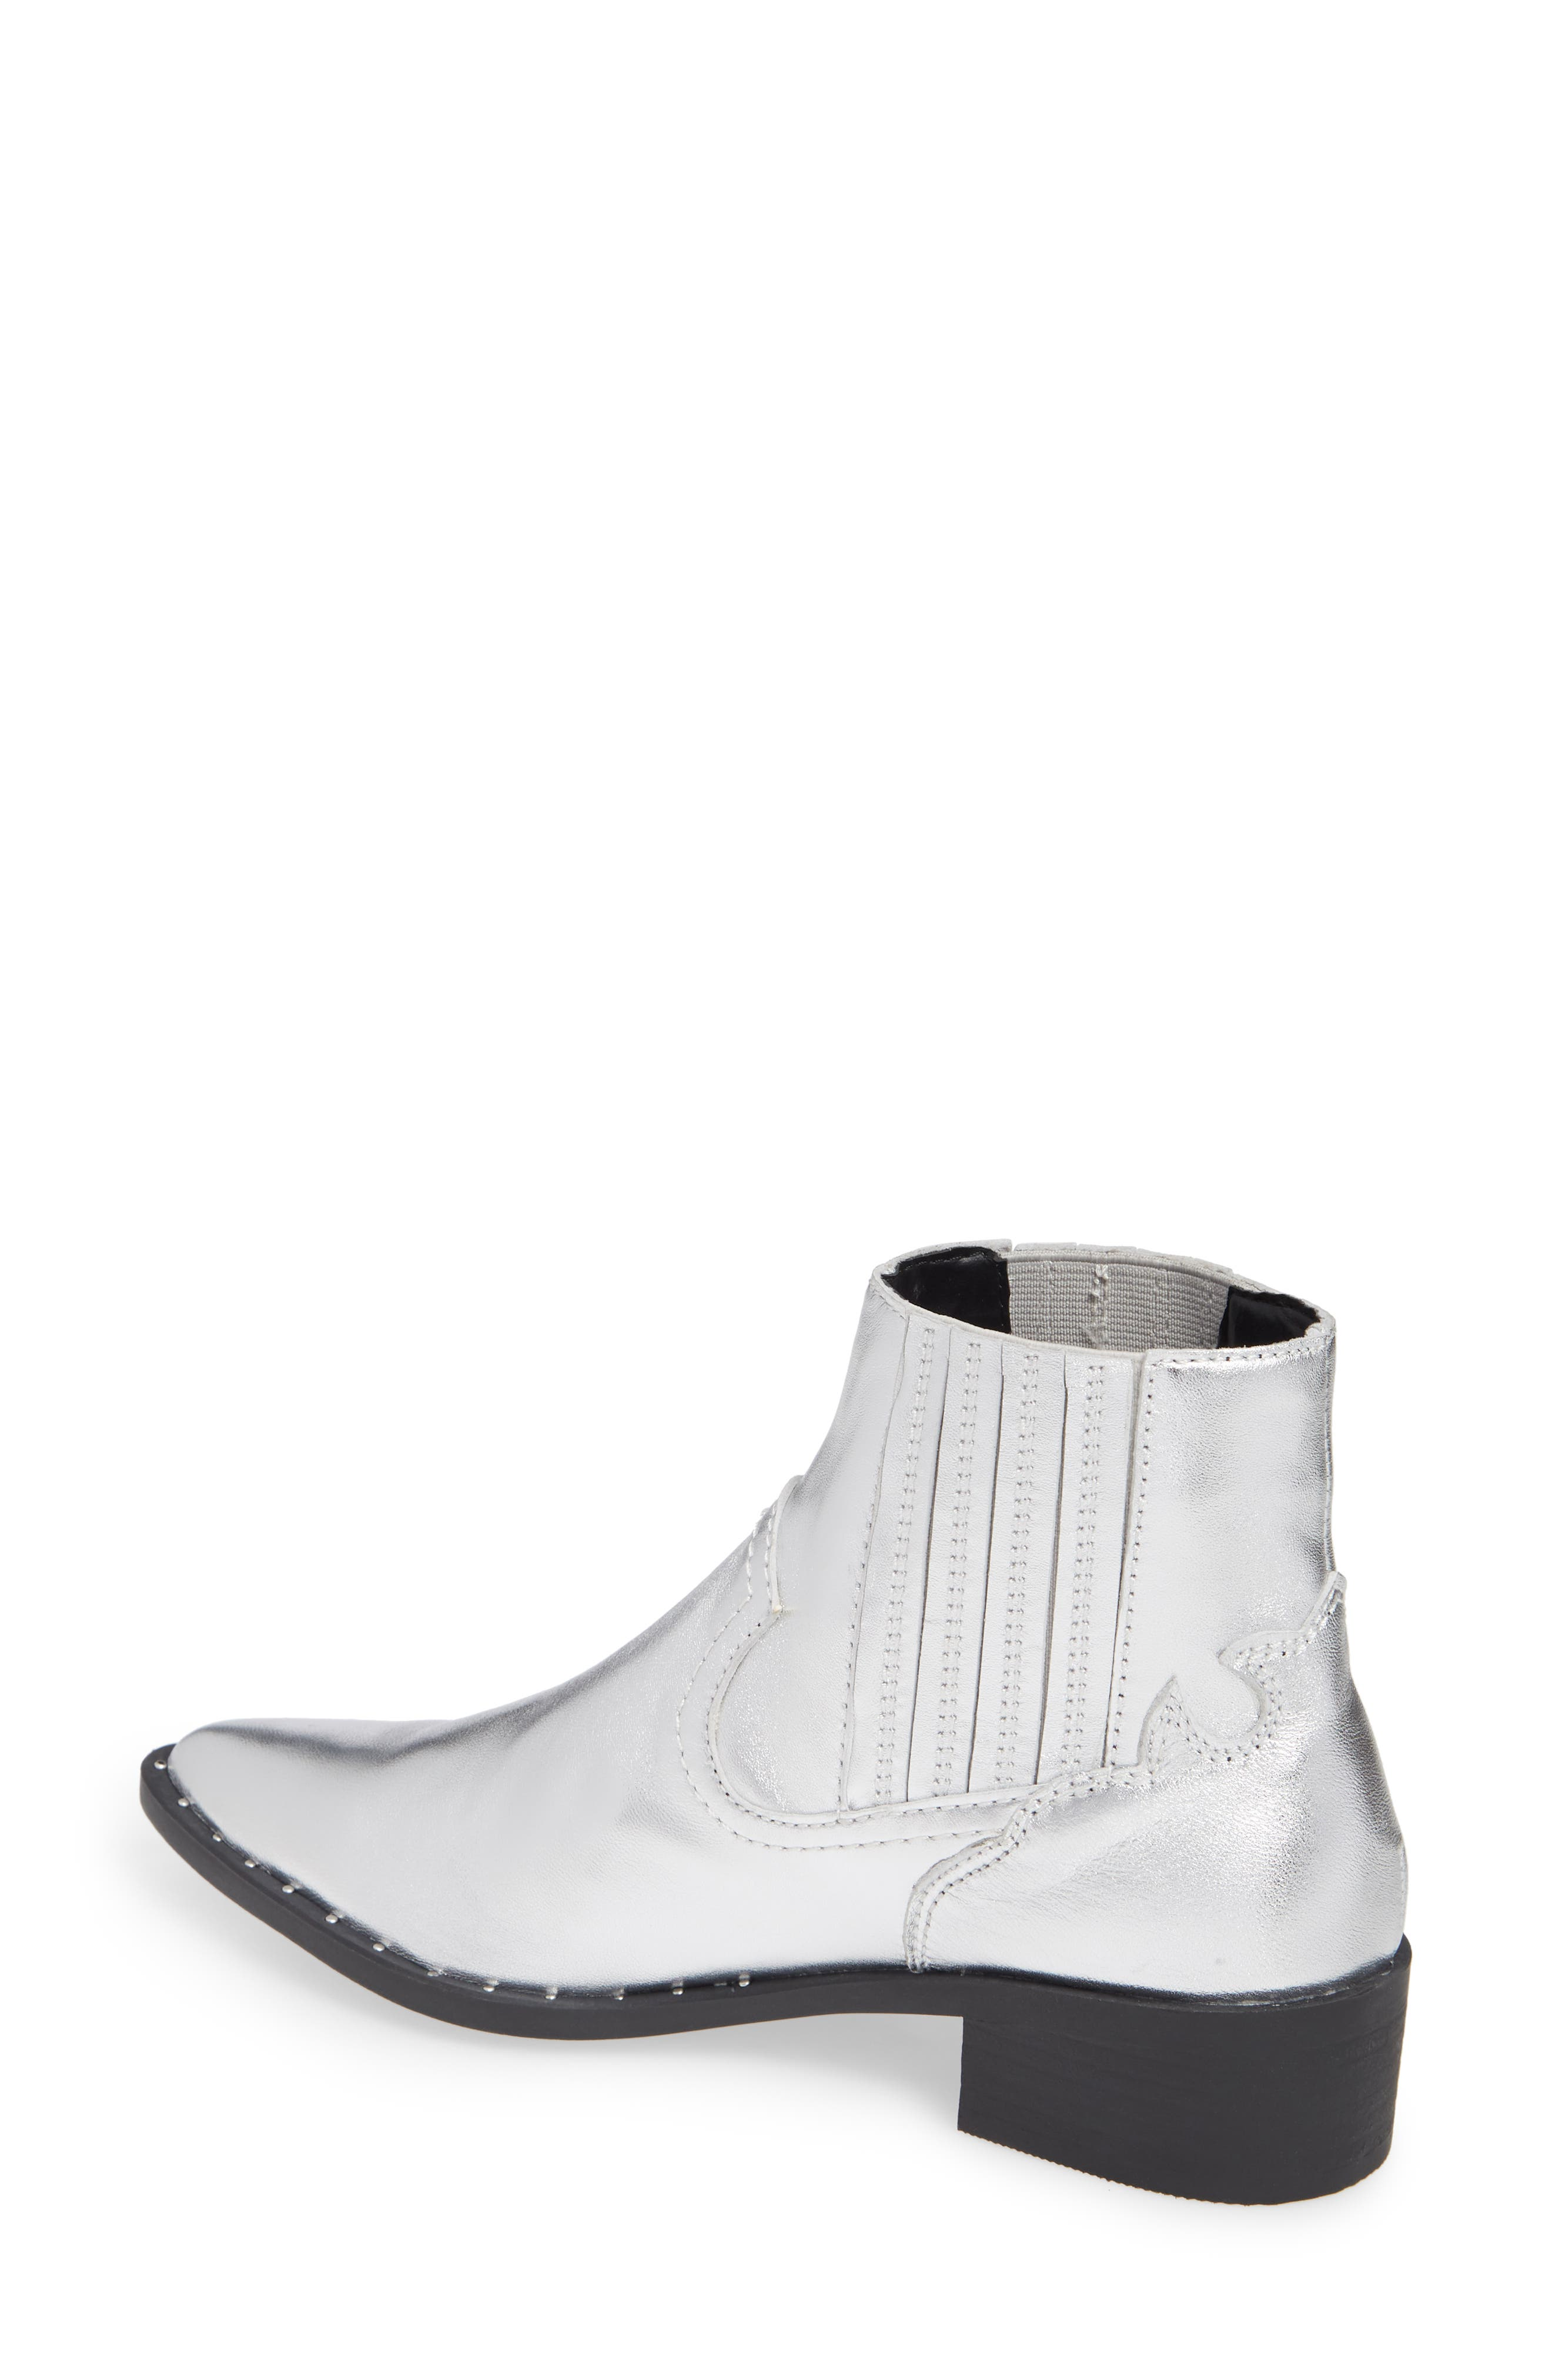 Juke Bootie,                             Alternate thumbnail 2, color,                             SILVER LEATHER